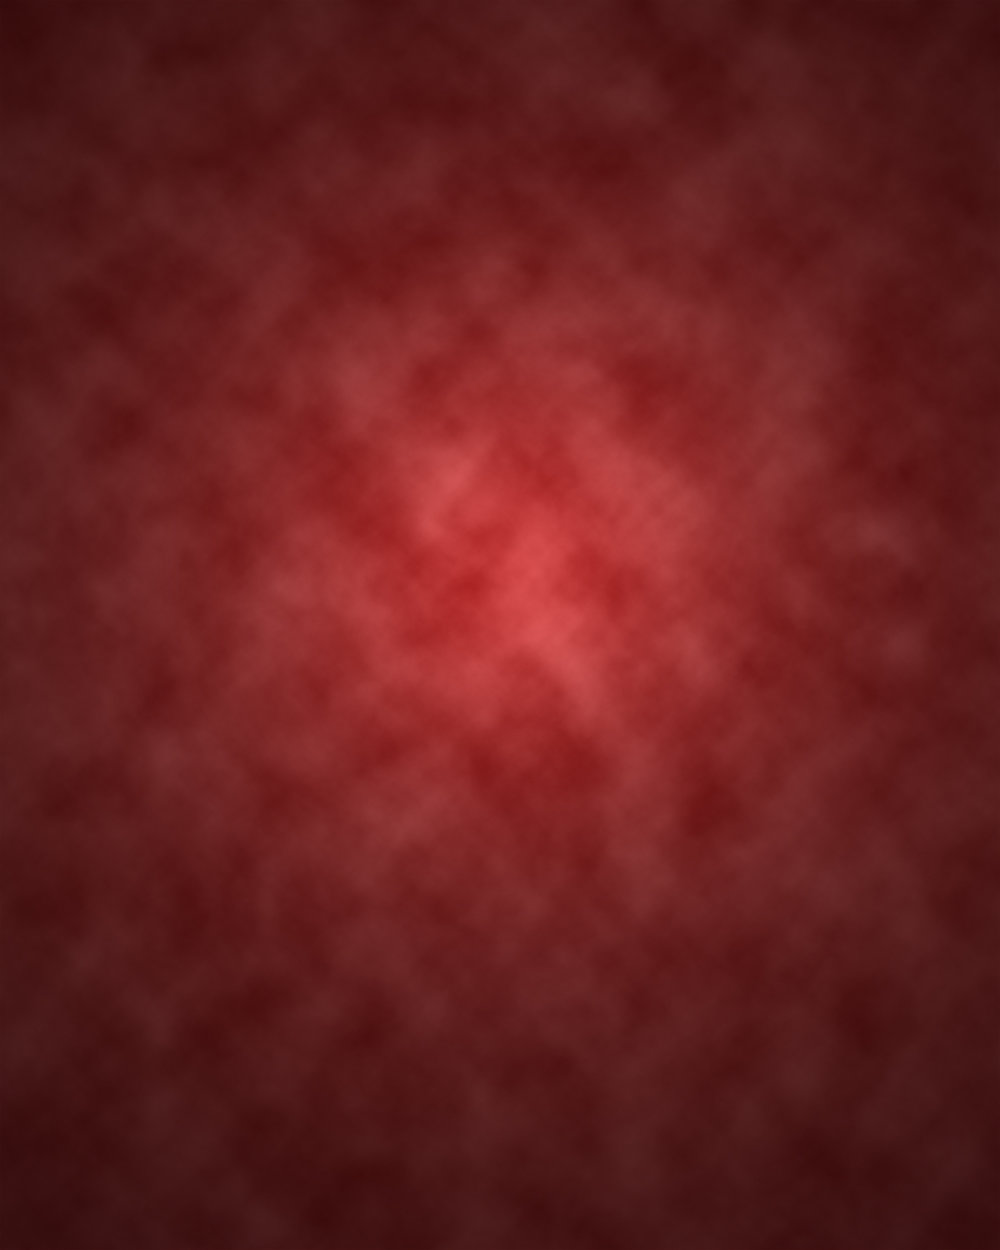 Background Option #6 - Red